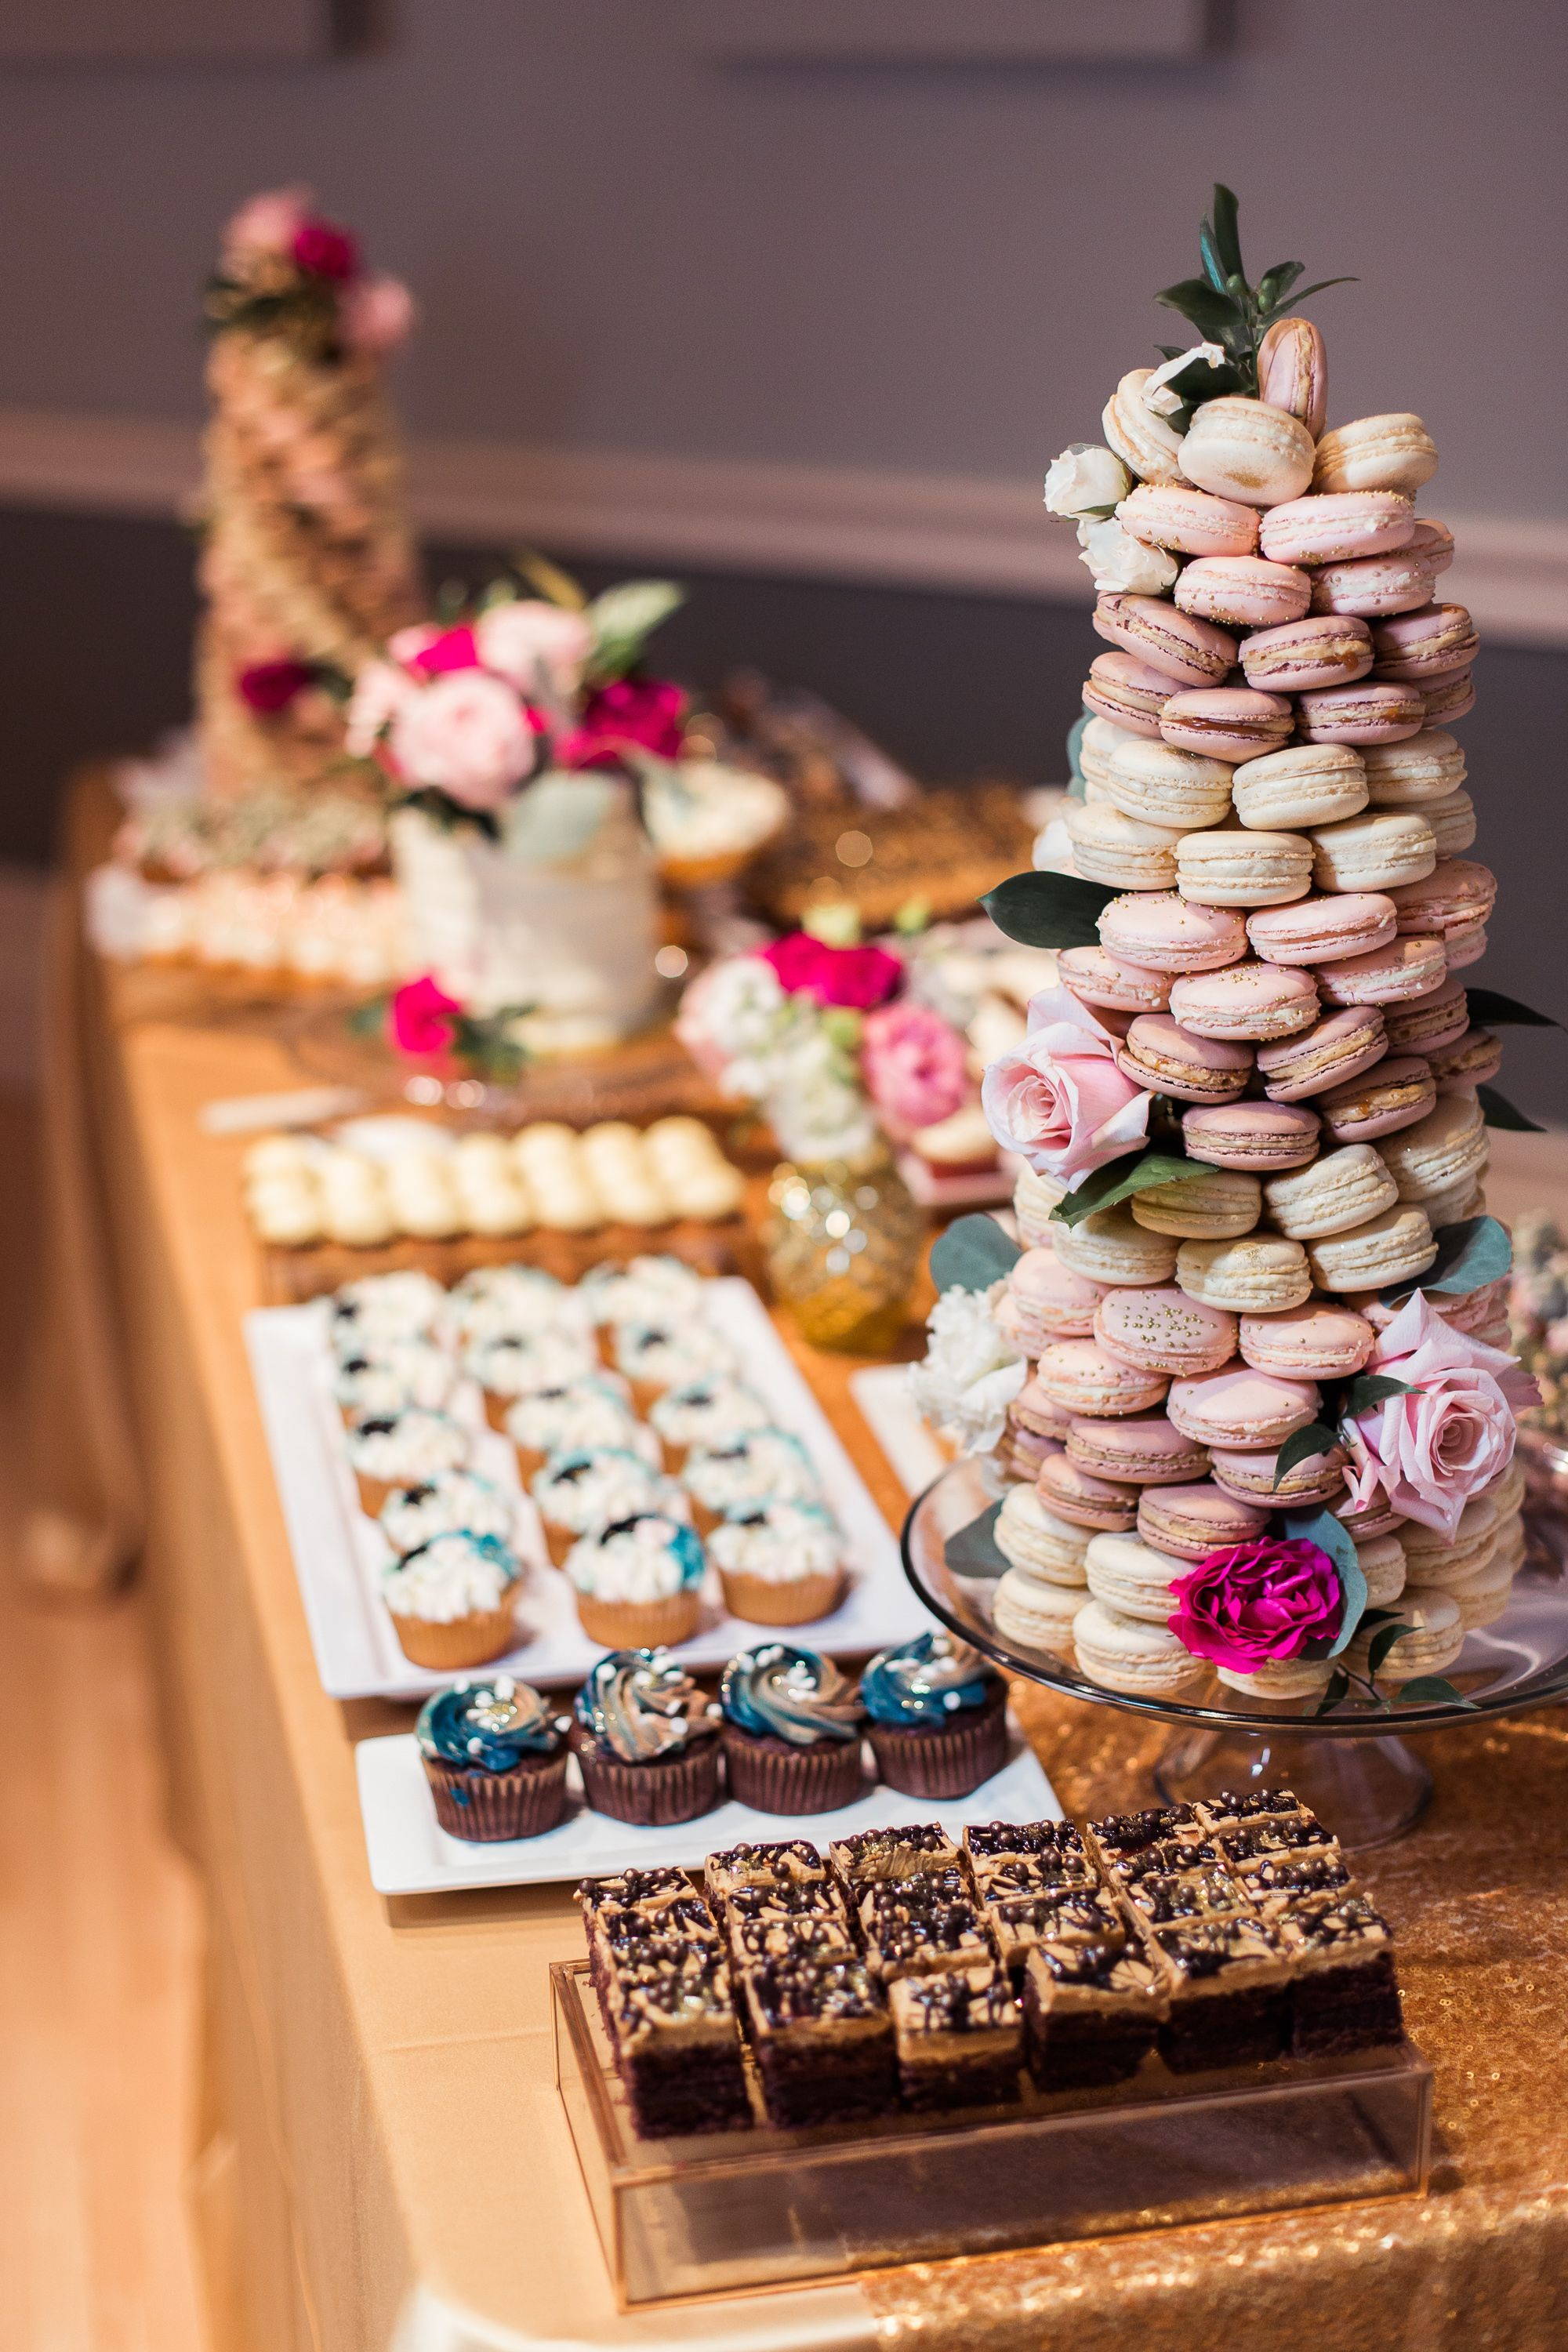 Decked out dessert table with different platters and cake